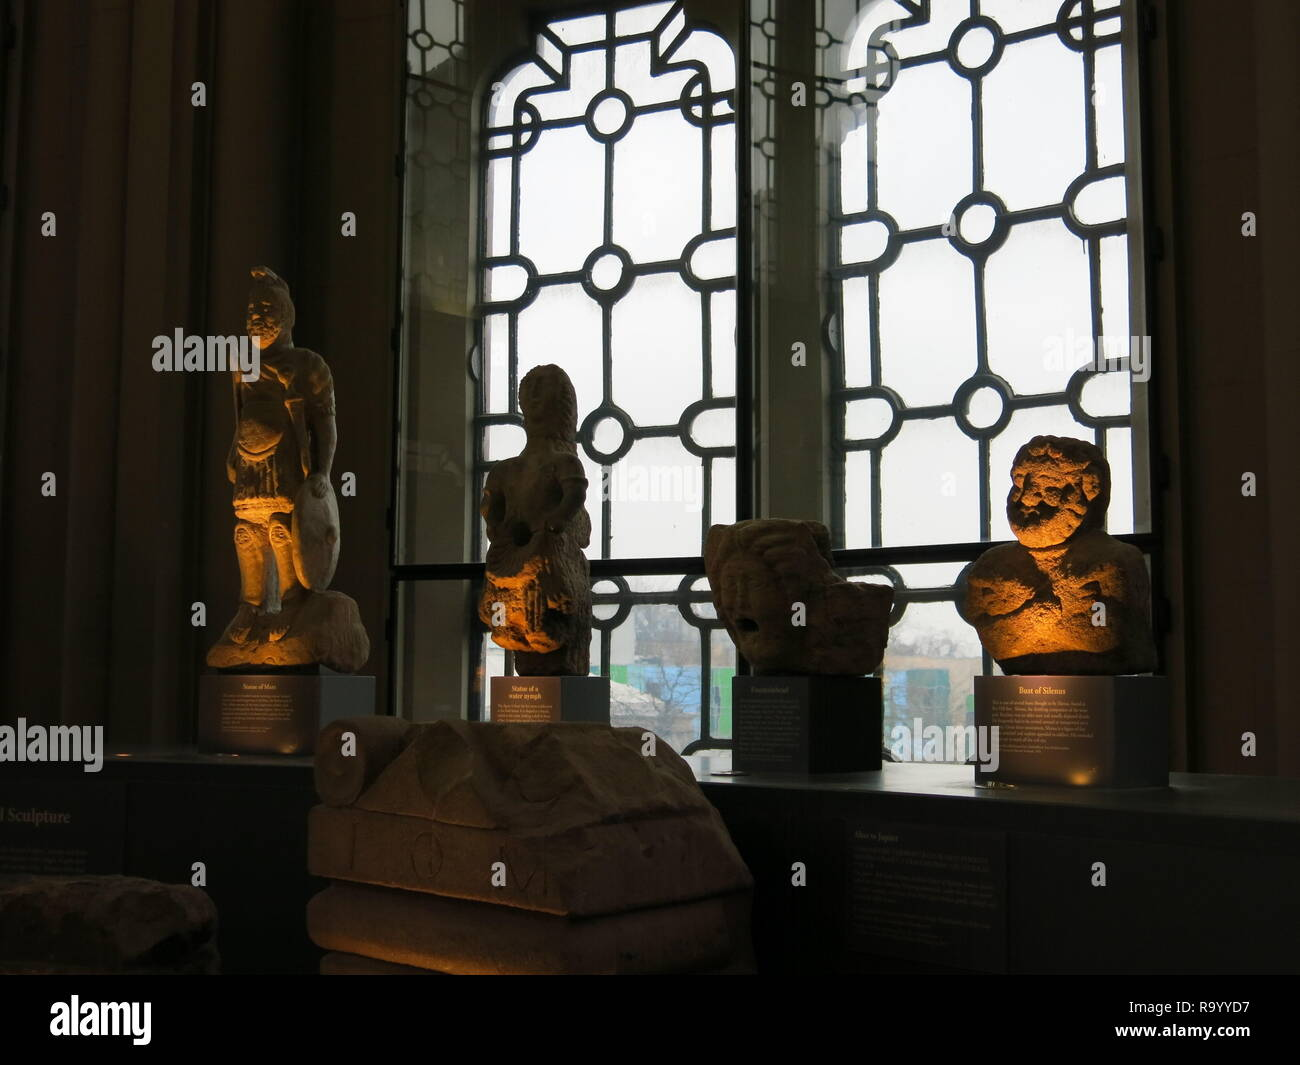 Roman artefacts in the sculpture gallery at the Hunterian Museum, University of Glasgow - Stock Image